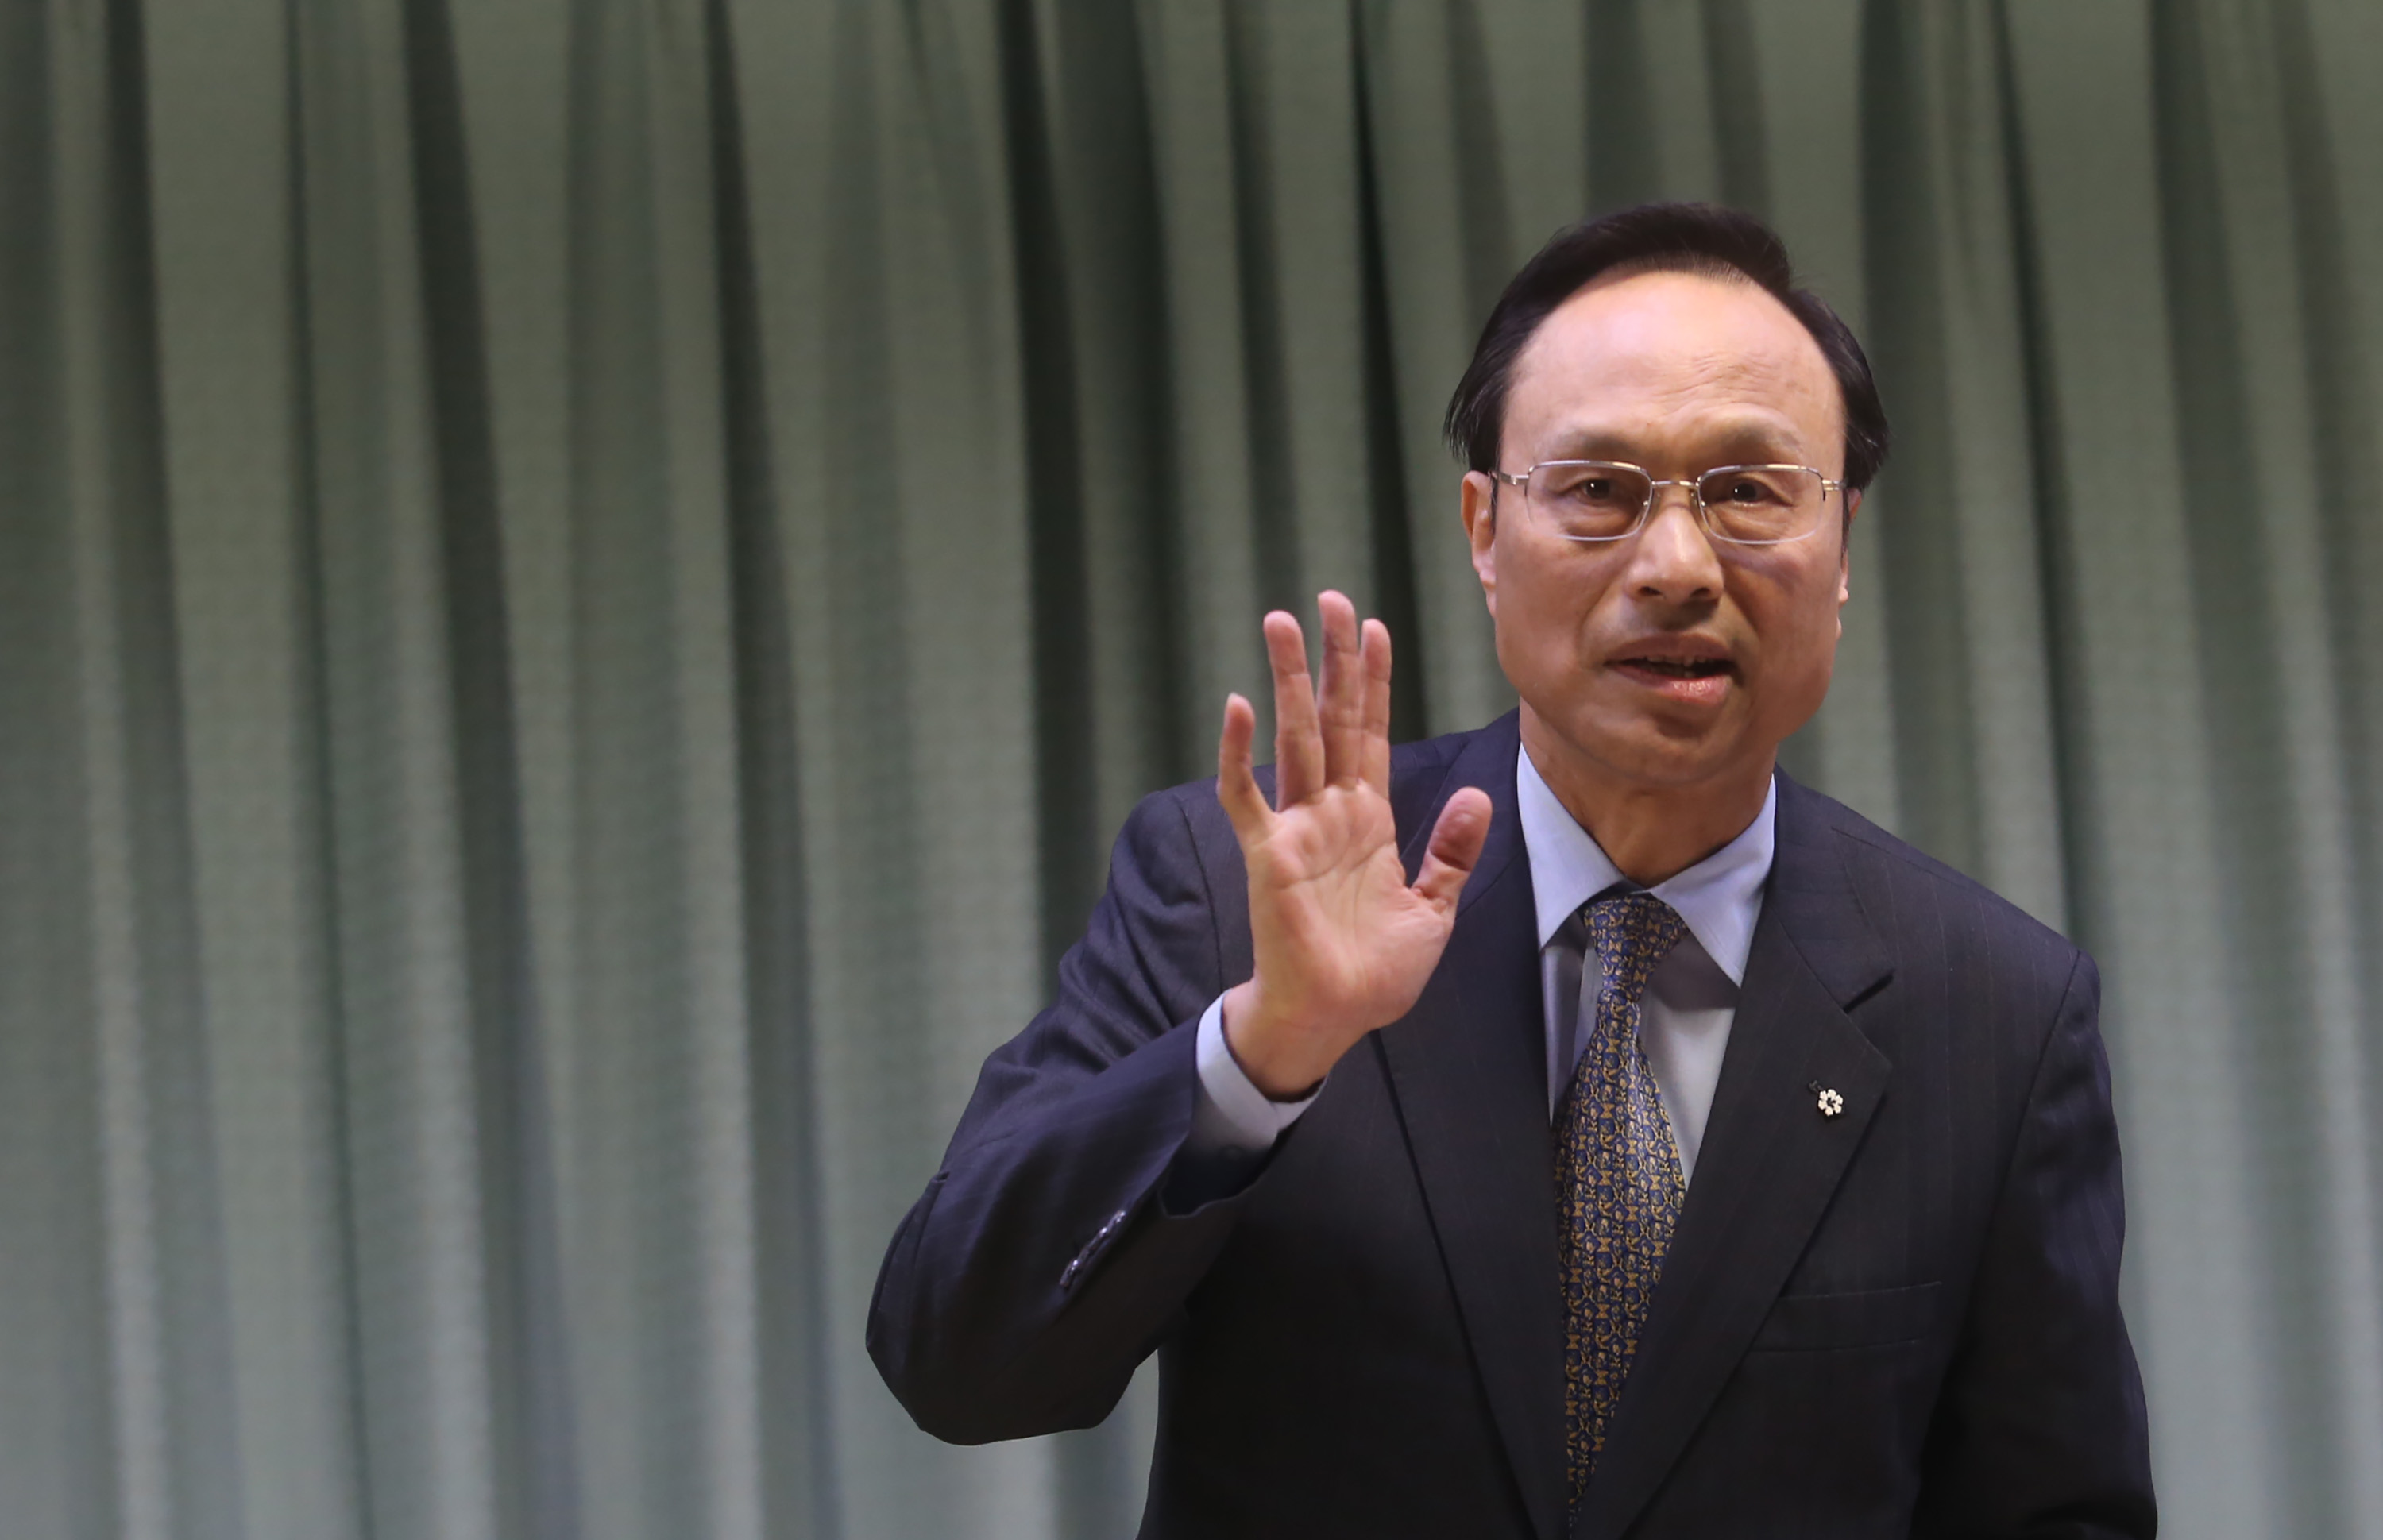 Chen Chun-shen (陳俊賢) has become the director-general of the Bureau of Consular Affairs